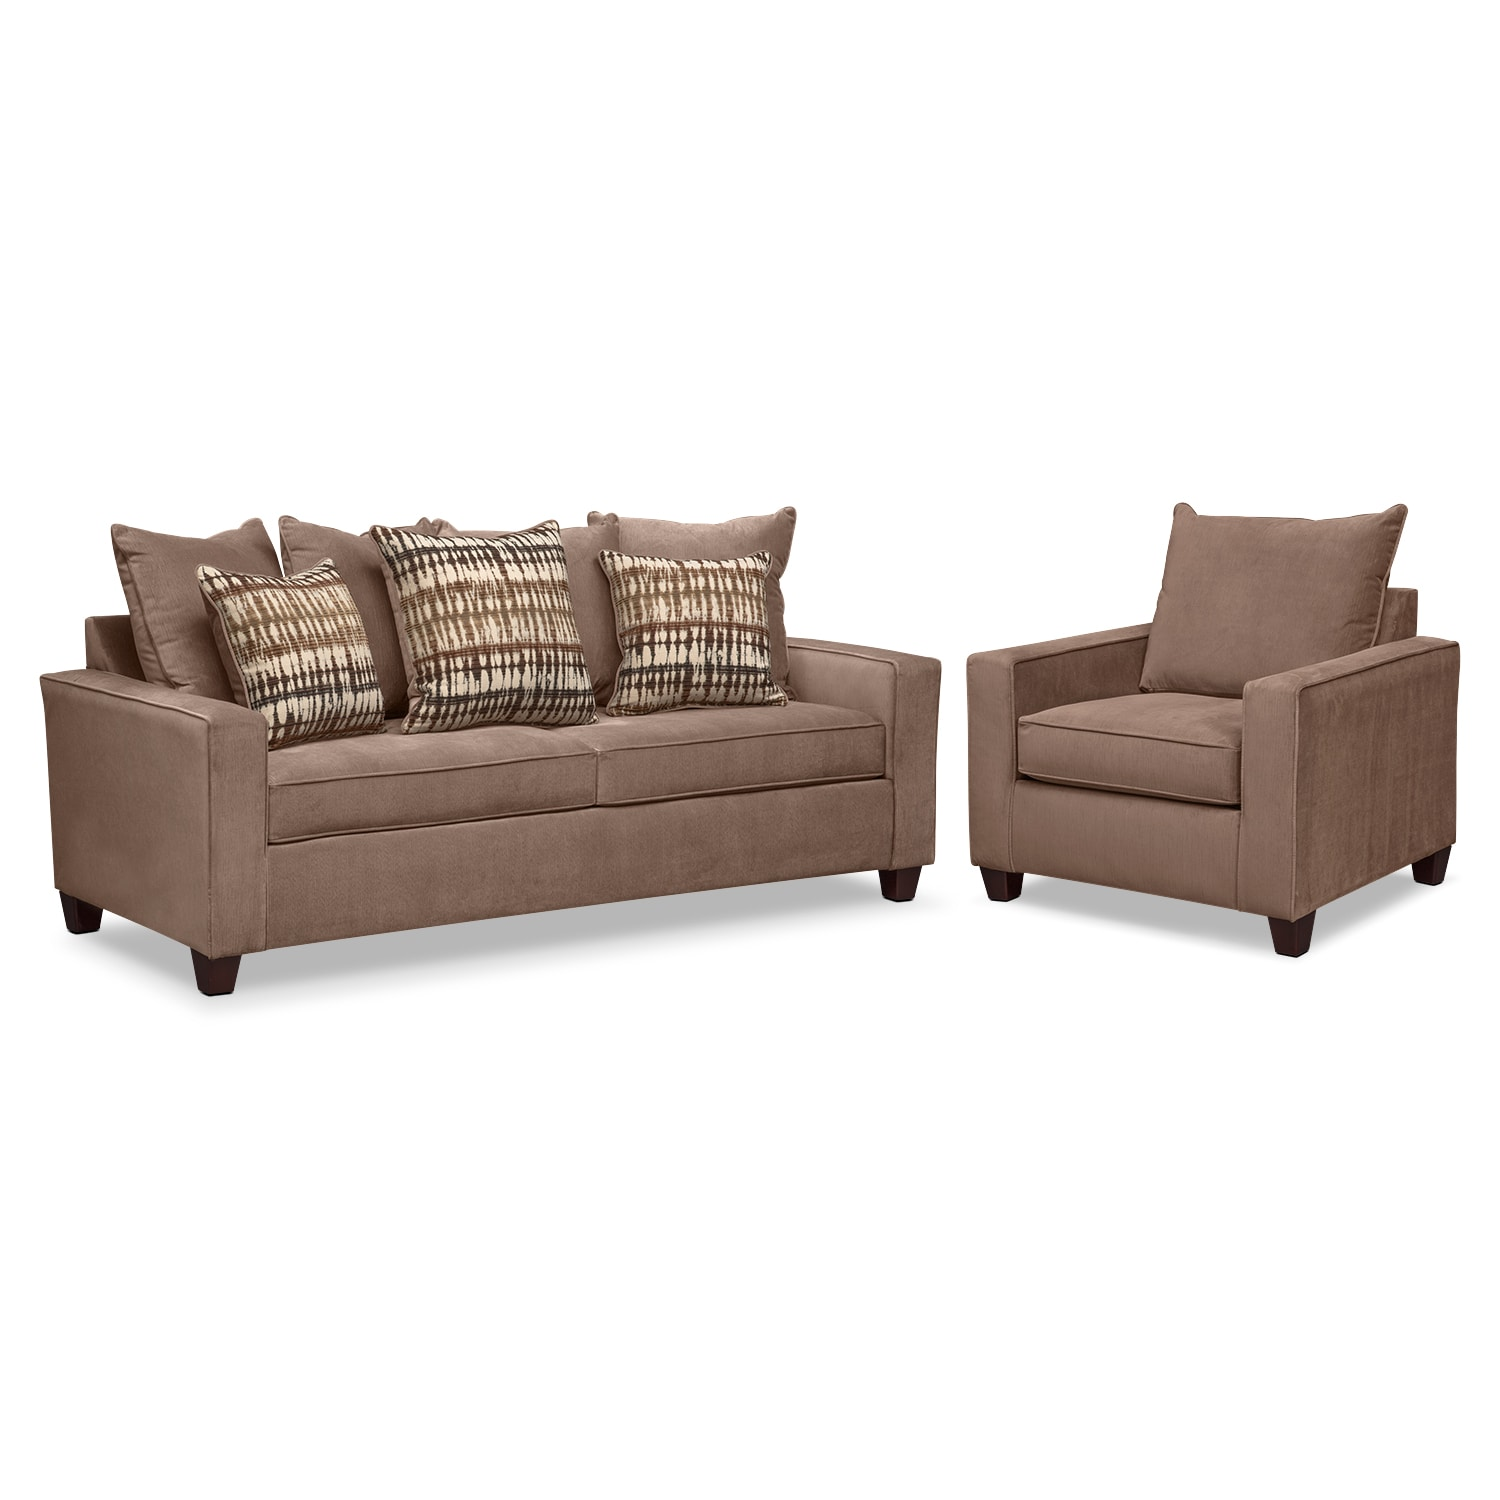 Living Room Furniture - Bryden Sofa and Chair Set - Chocolate